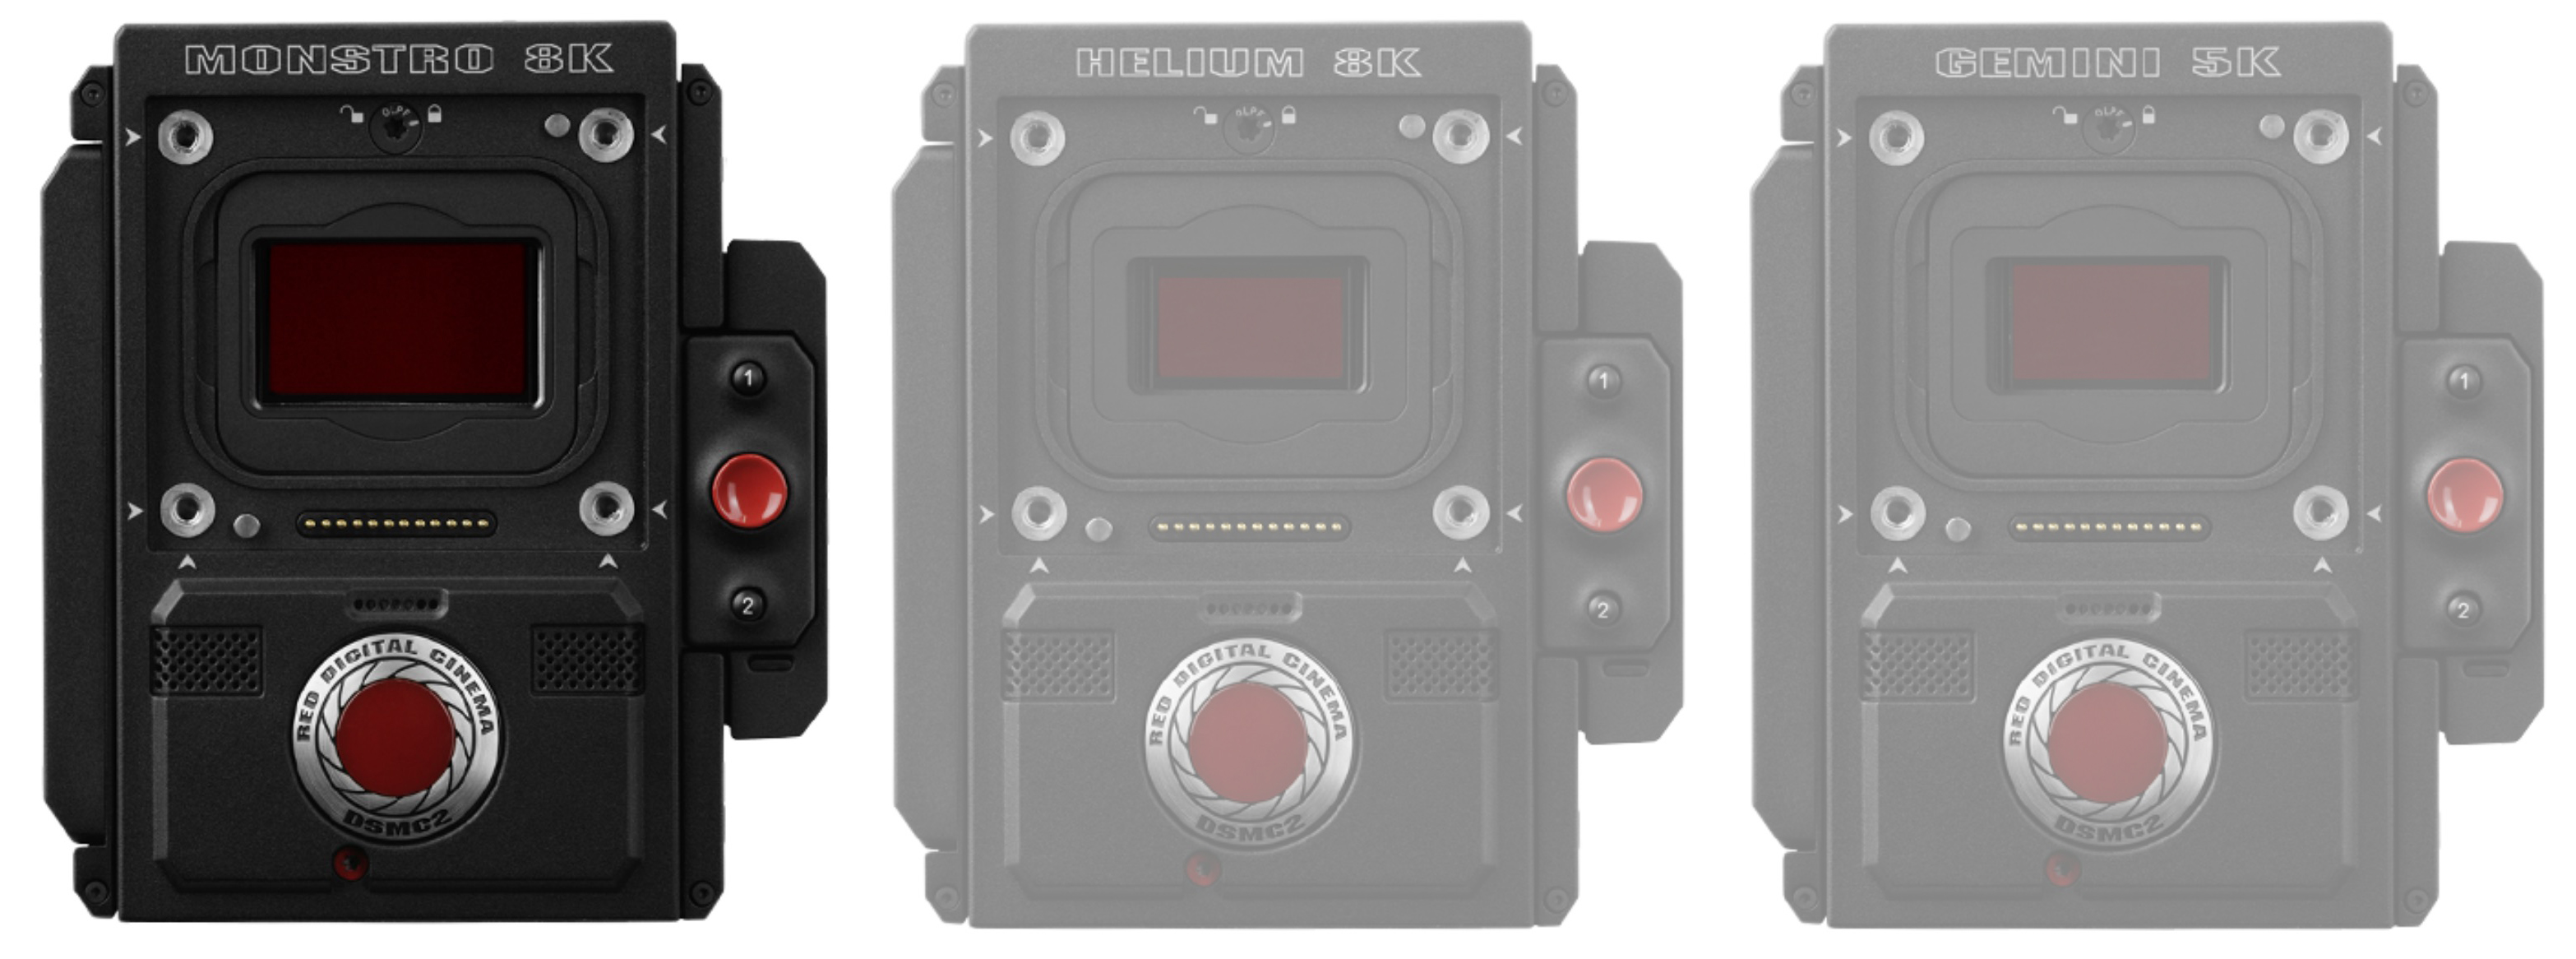 Which Red Is Camera Line Up Explained Confusion Simple Digital Diagram Circuit With Parts The Monstro Sensor Offers 8k Resolution In Vistavision Format Vv To 60fps Circa Full Frame 35mm Territory Chart Here